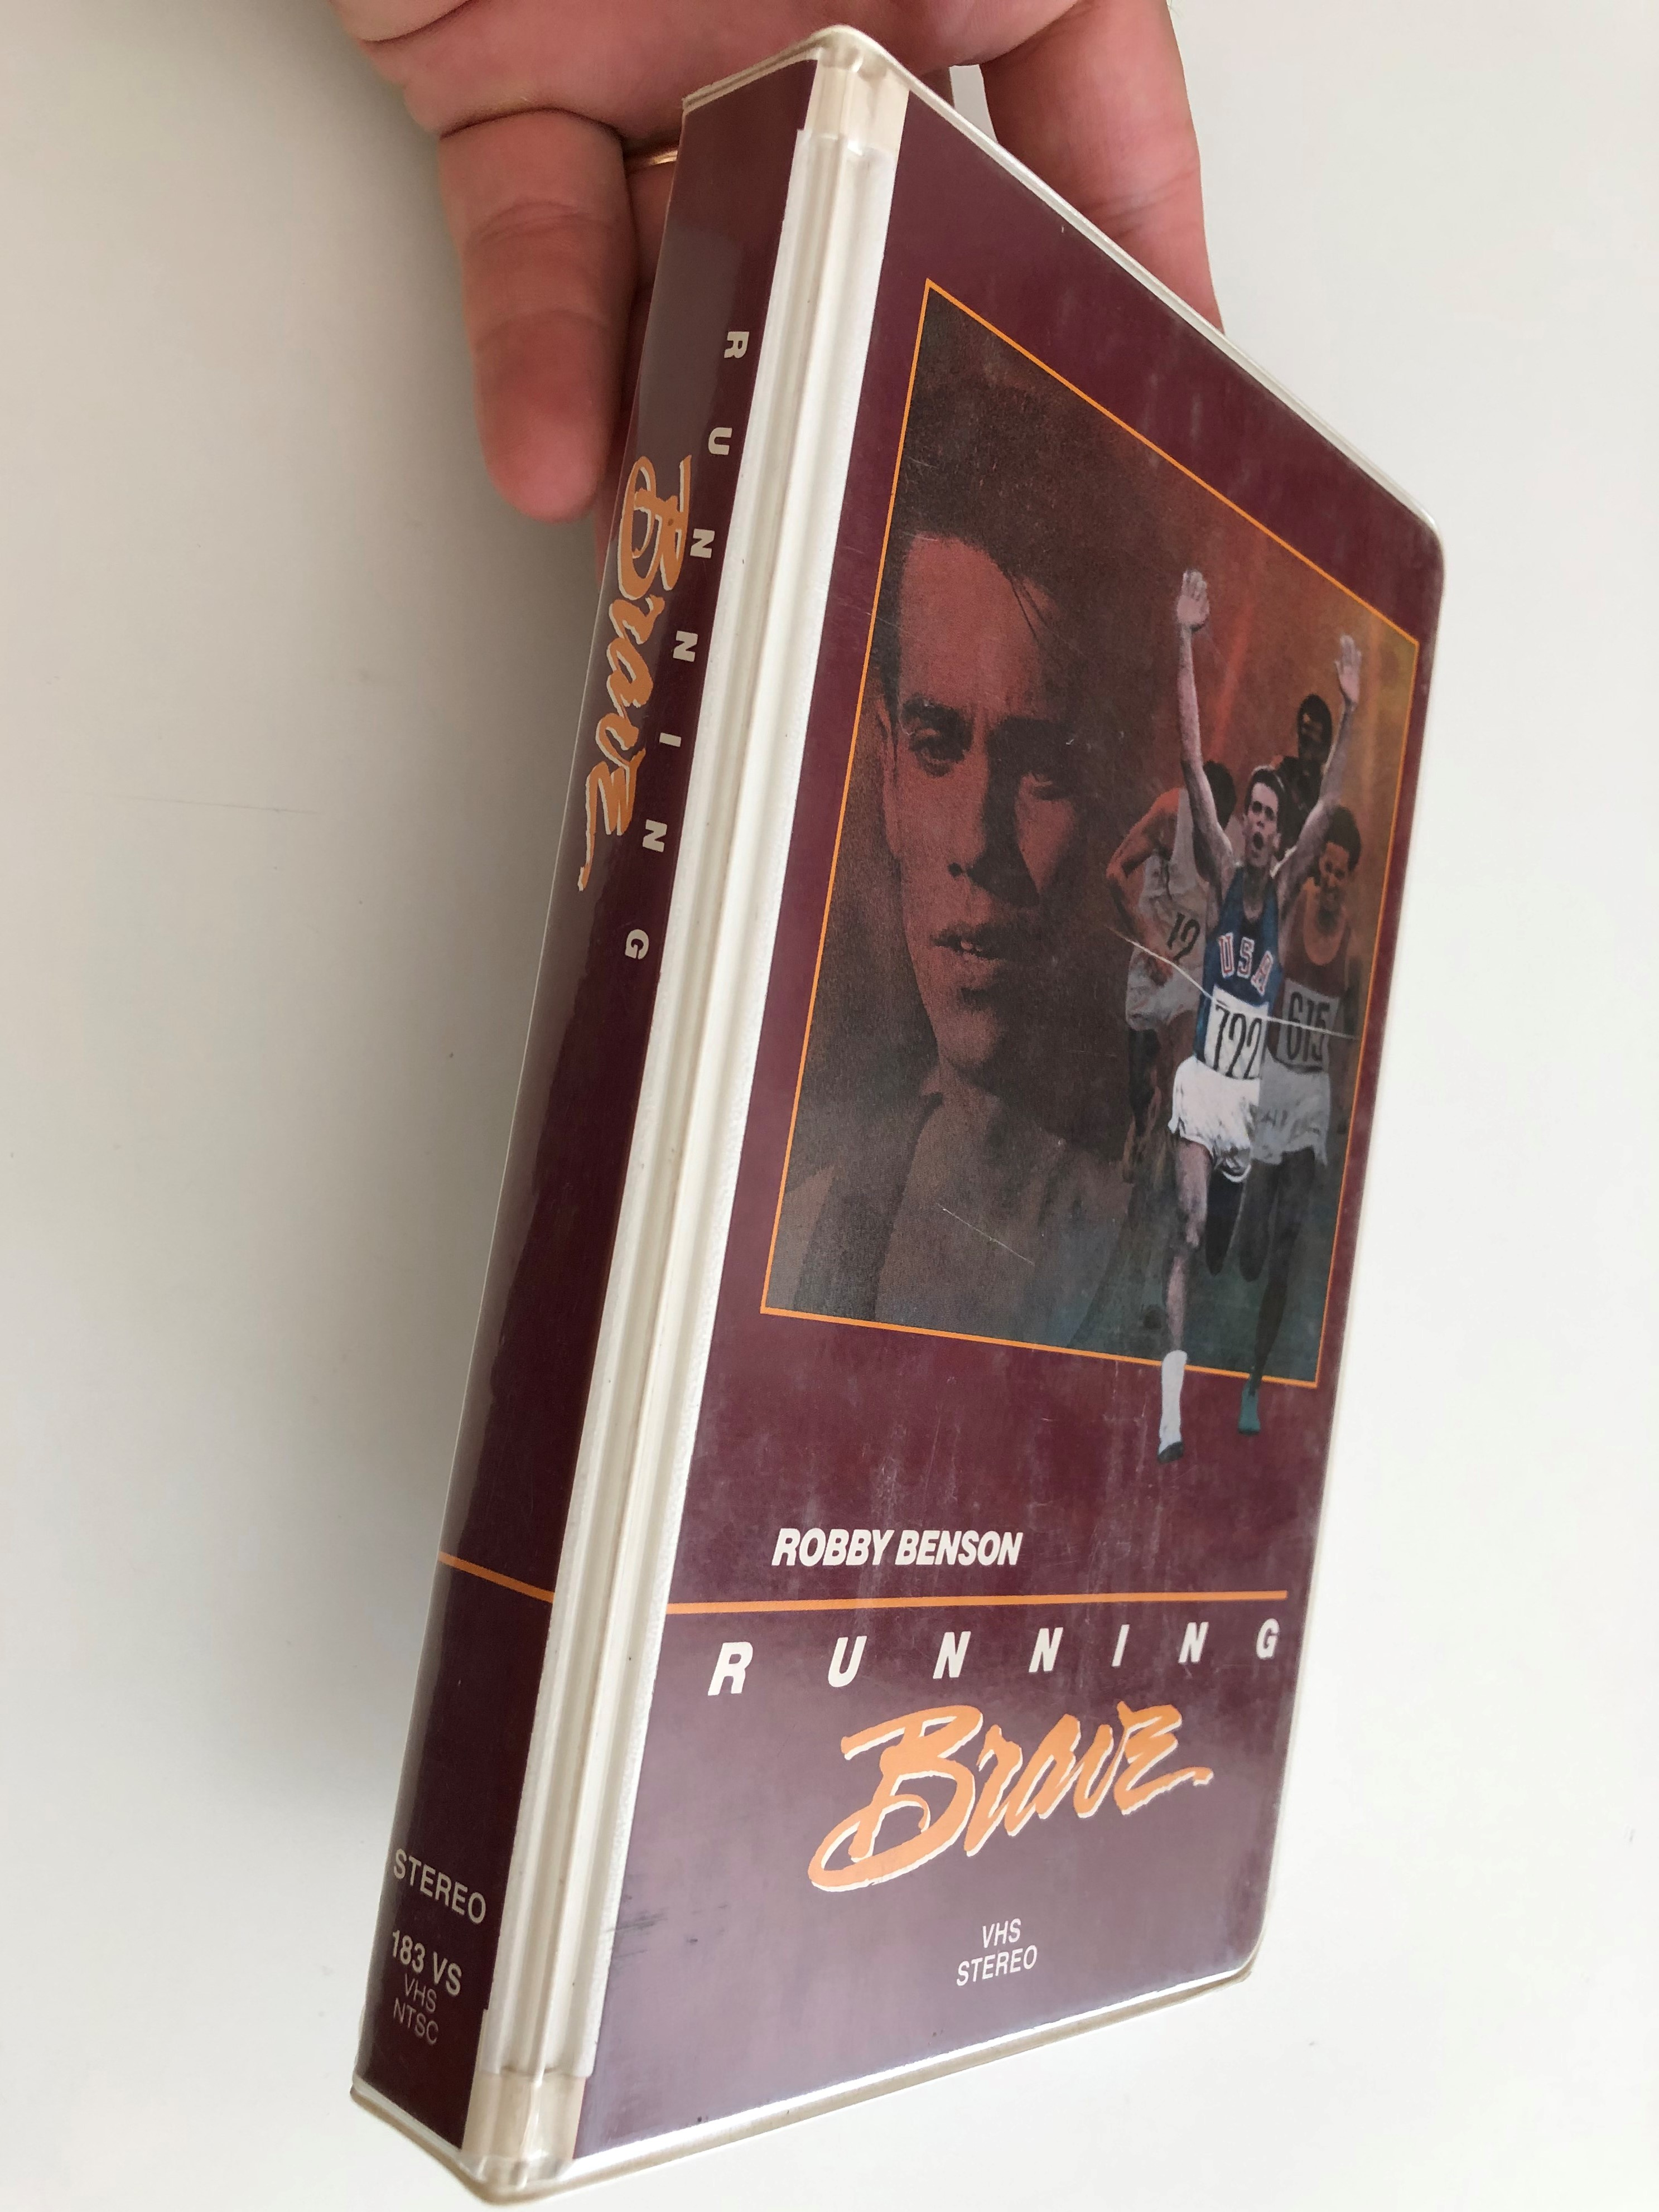 robby-benson-running-brave-vhs-1983-directed-by-d.-s.-everett-starring-robby-benson-pat-hingle-claudia-cron-jeff-mccracken-ntsc-color-the-story-of-billy-mills-world-class-distance-runner-2-.jpg